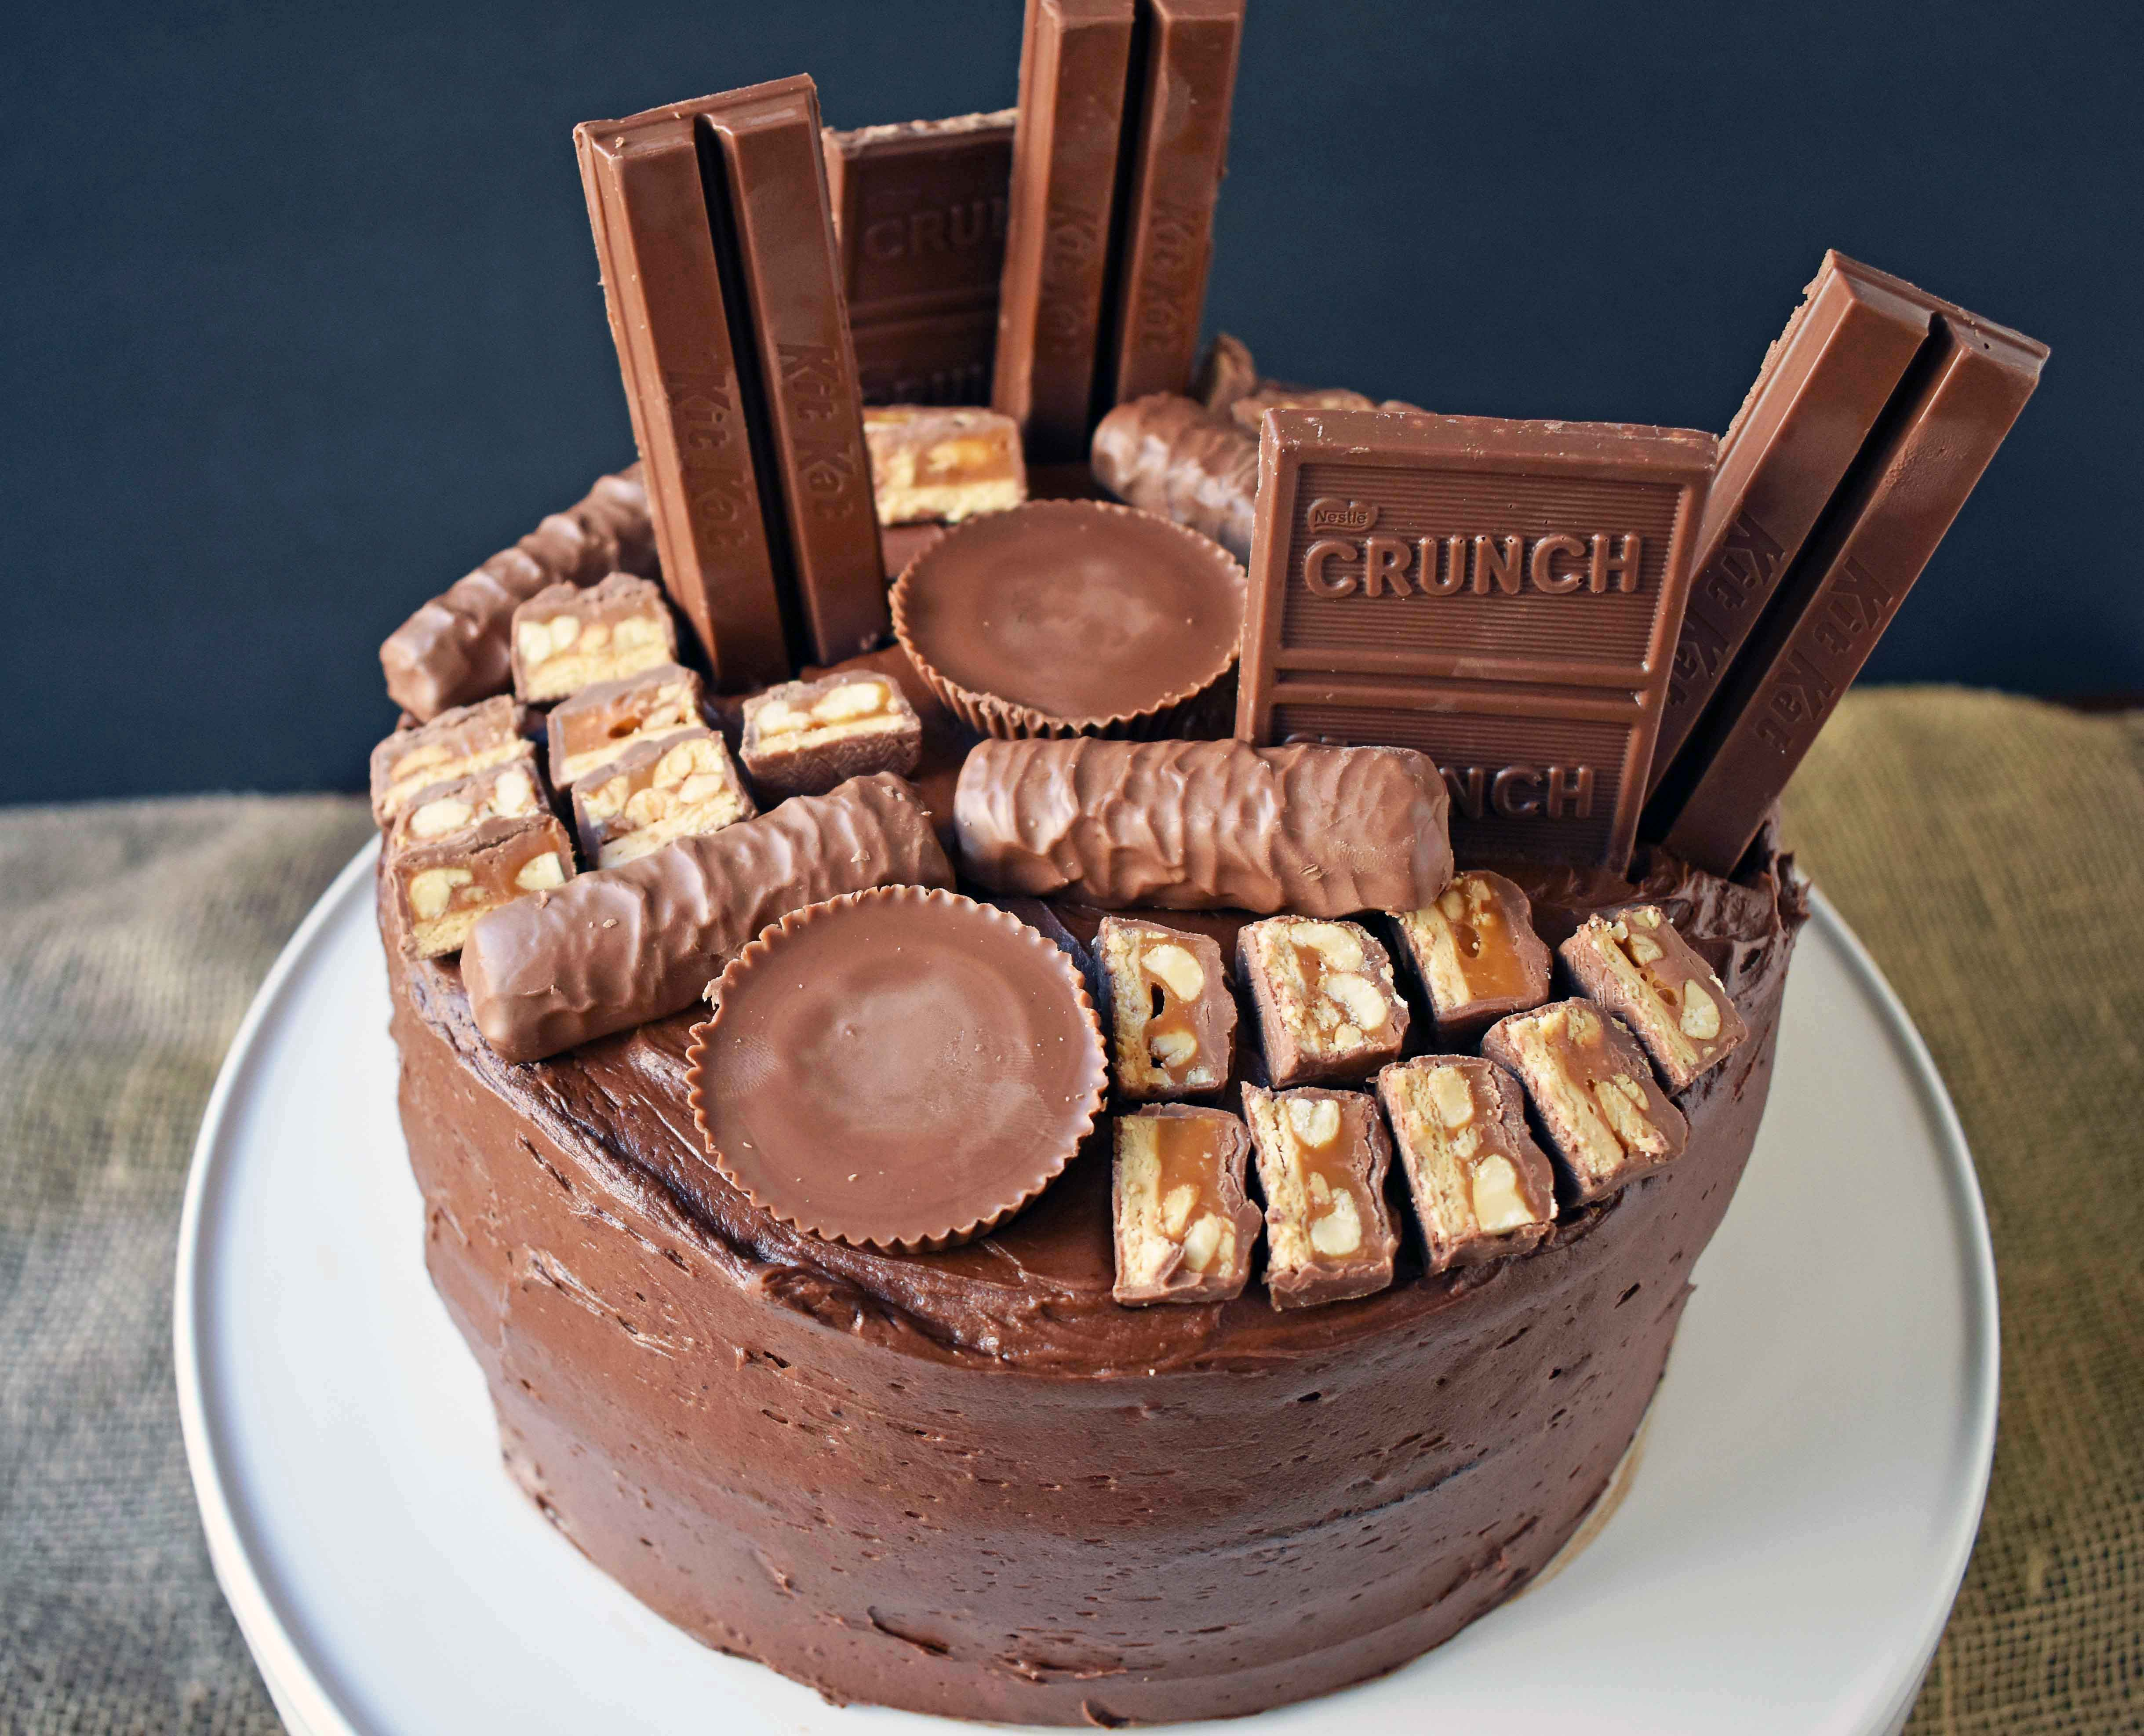 Candy Bar Stash Chocolate Cake by Modern Honey. Perfect chocolate cake topped with chocolate buttercream and the most popular candy bars. It's the ultimate Chocolate Candy Bar Cake.